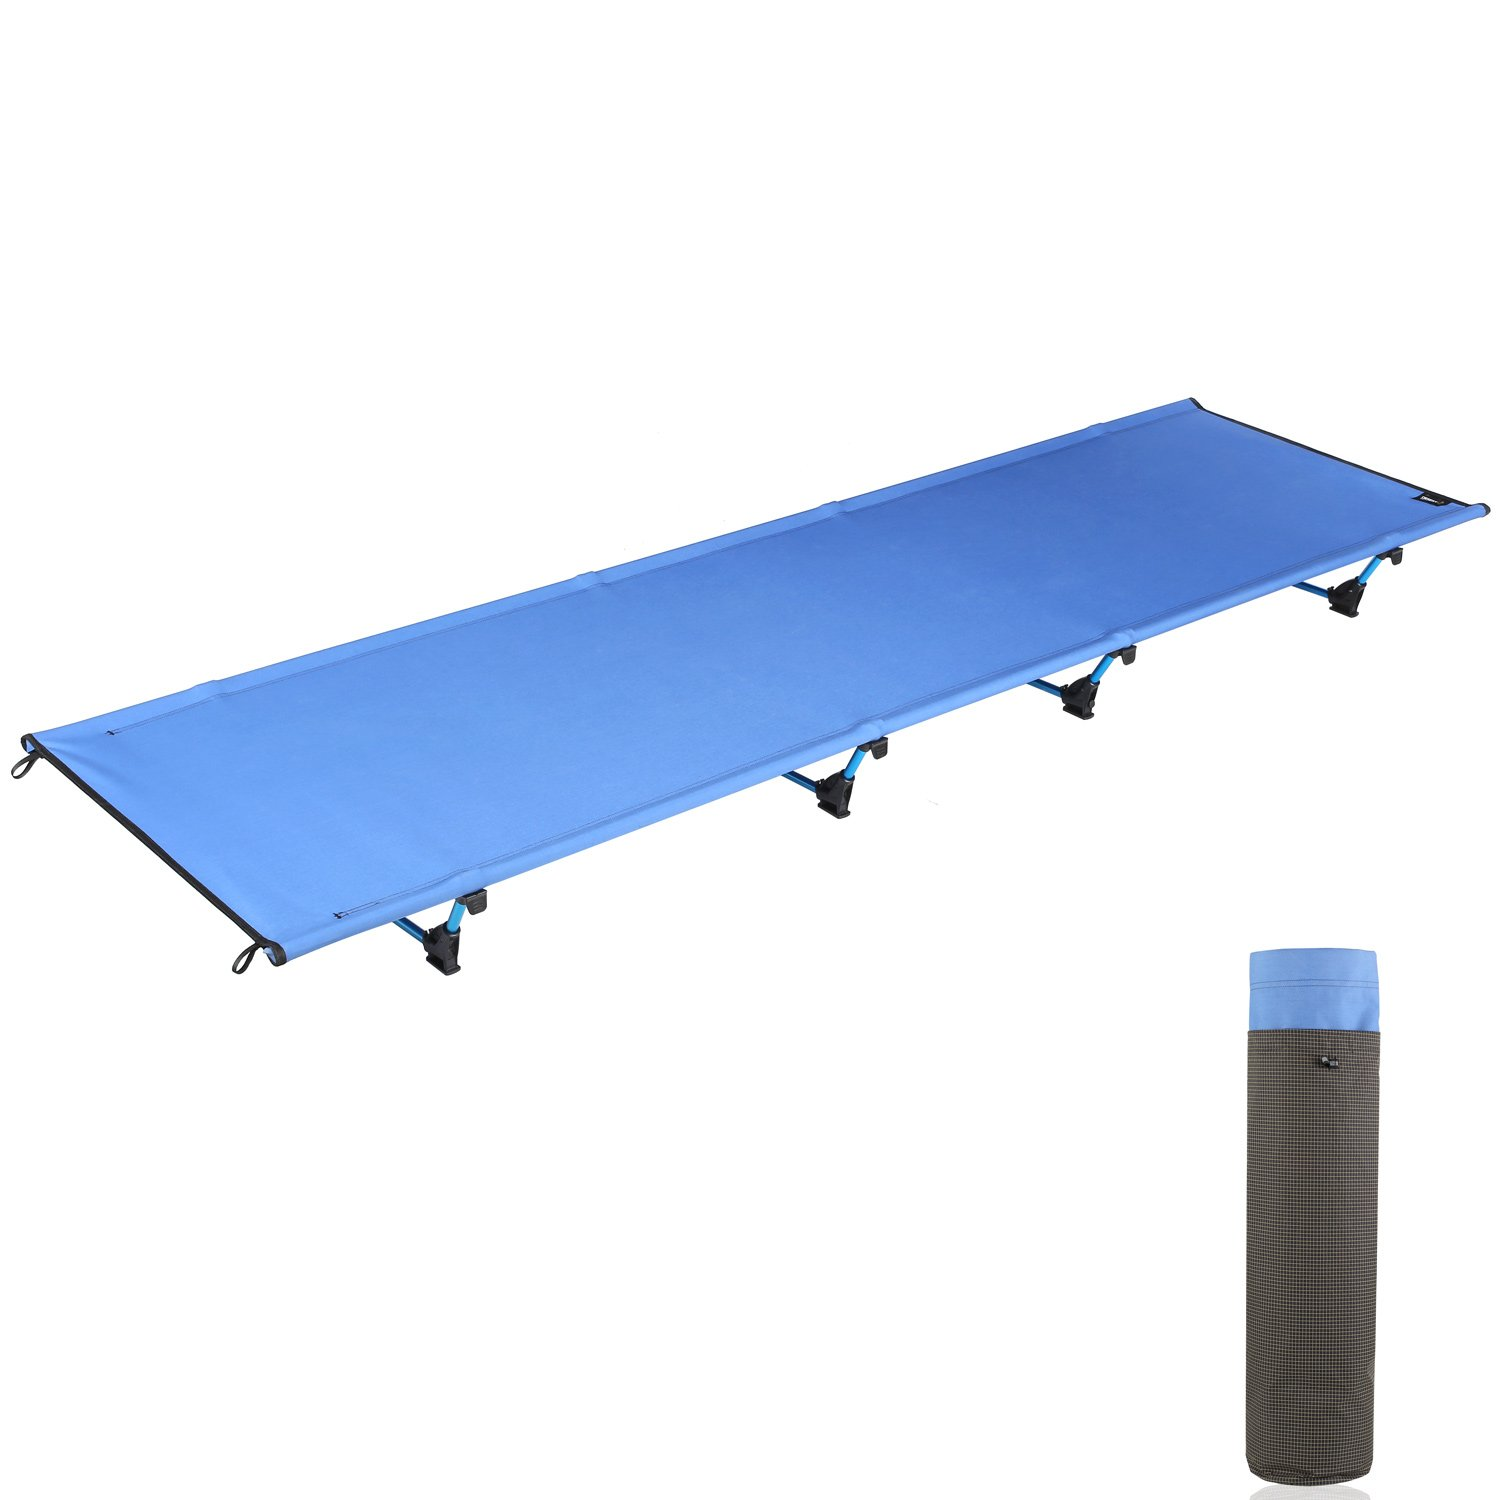 Amazon.com: femor Ultra-Lightweight Camping Cot, Portable Collapsible  Camping Bed, Aluminium Alloy Military Folding Cot for Outdoor Activity  Bearing 441bs ...